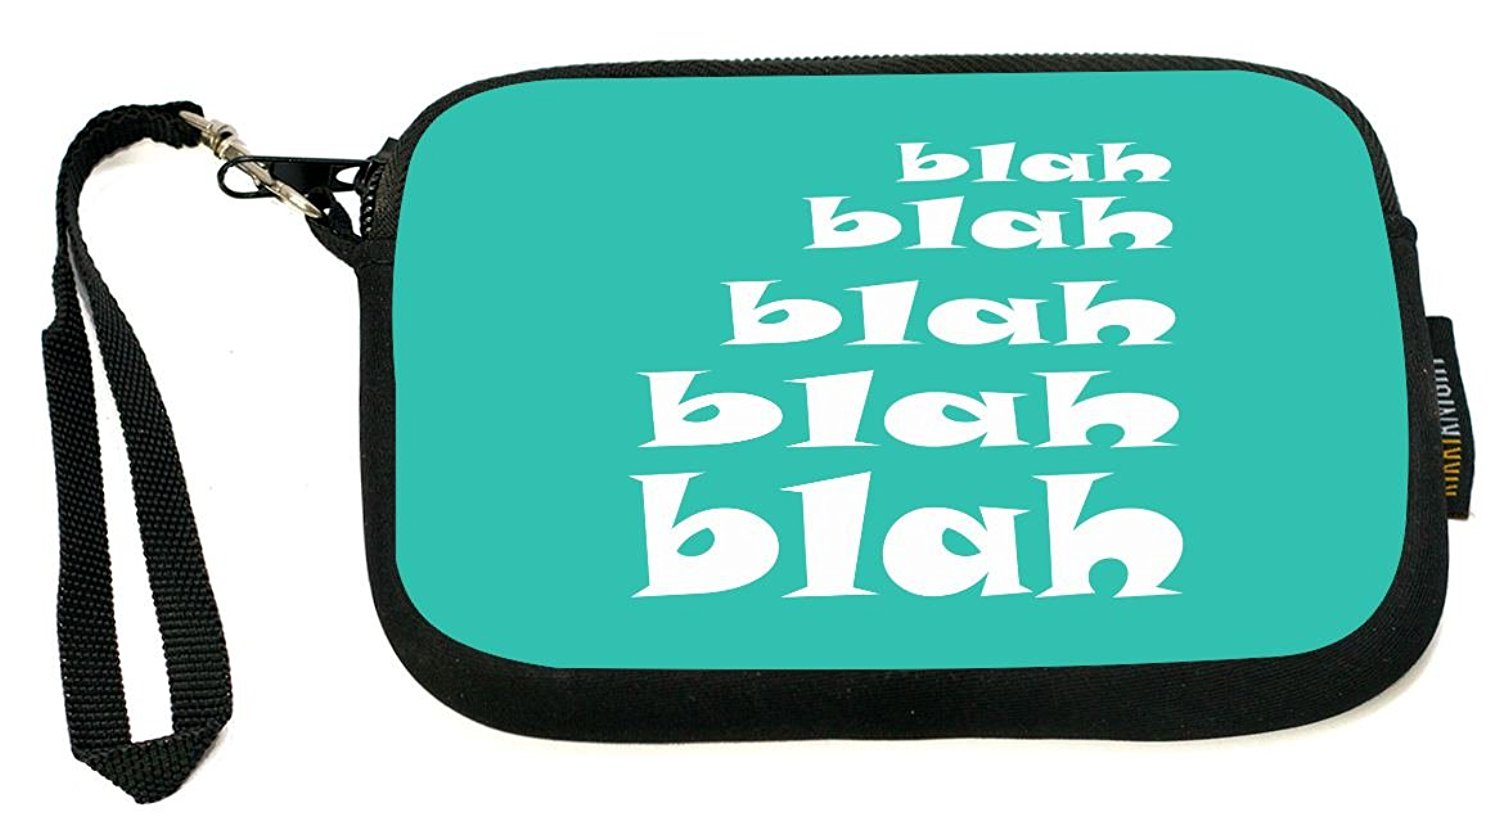 Rikki Knight Blah Blah Light Pink - Neoprene Clutch Wristlet with Safety Closure - Ideal case for Camera, Cell Phone, Gameboy, Passport, Cosmetics case, Universal Cell Phone Case etc..